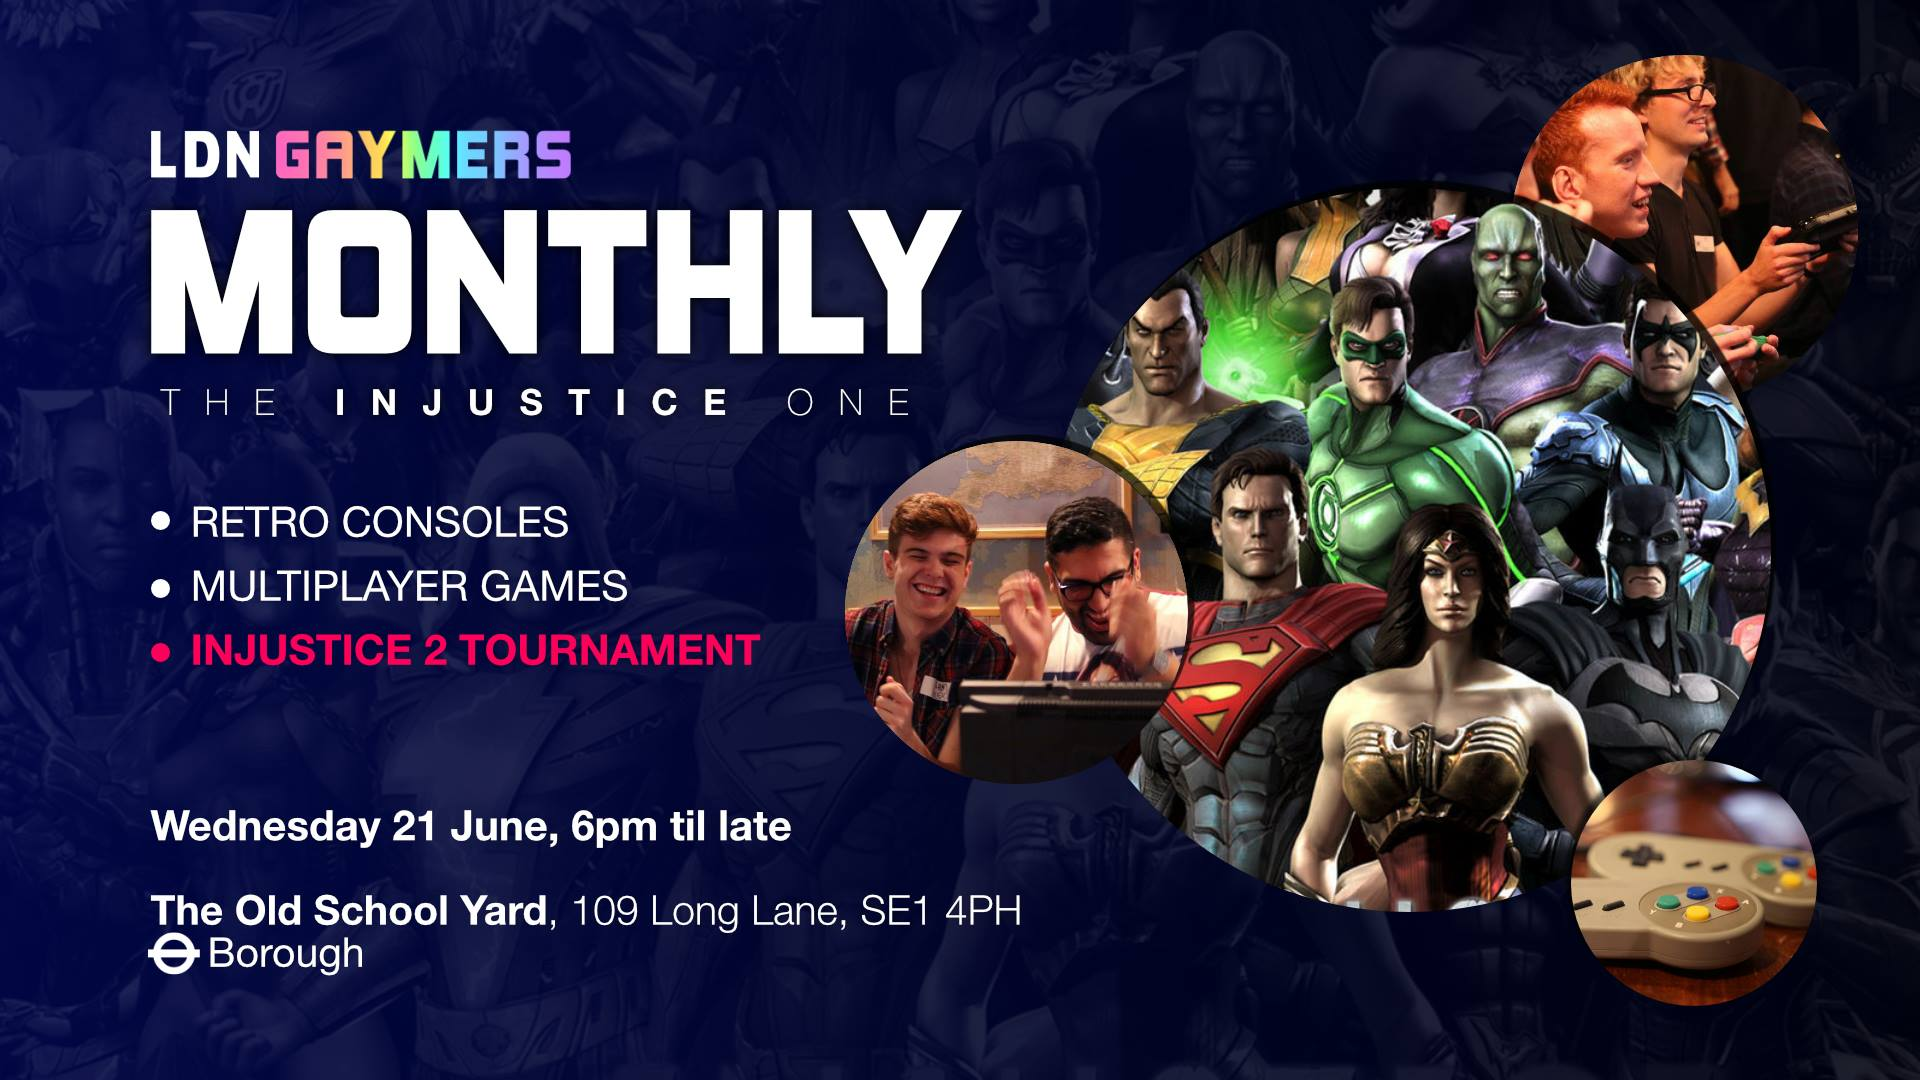 LDN Gaymers Monthly: The Injustice One